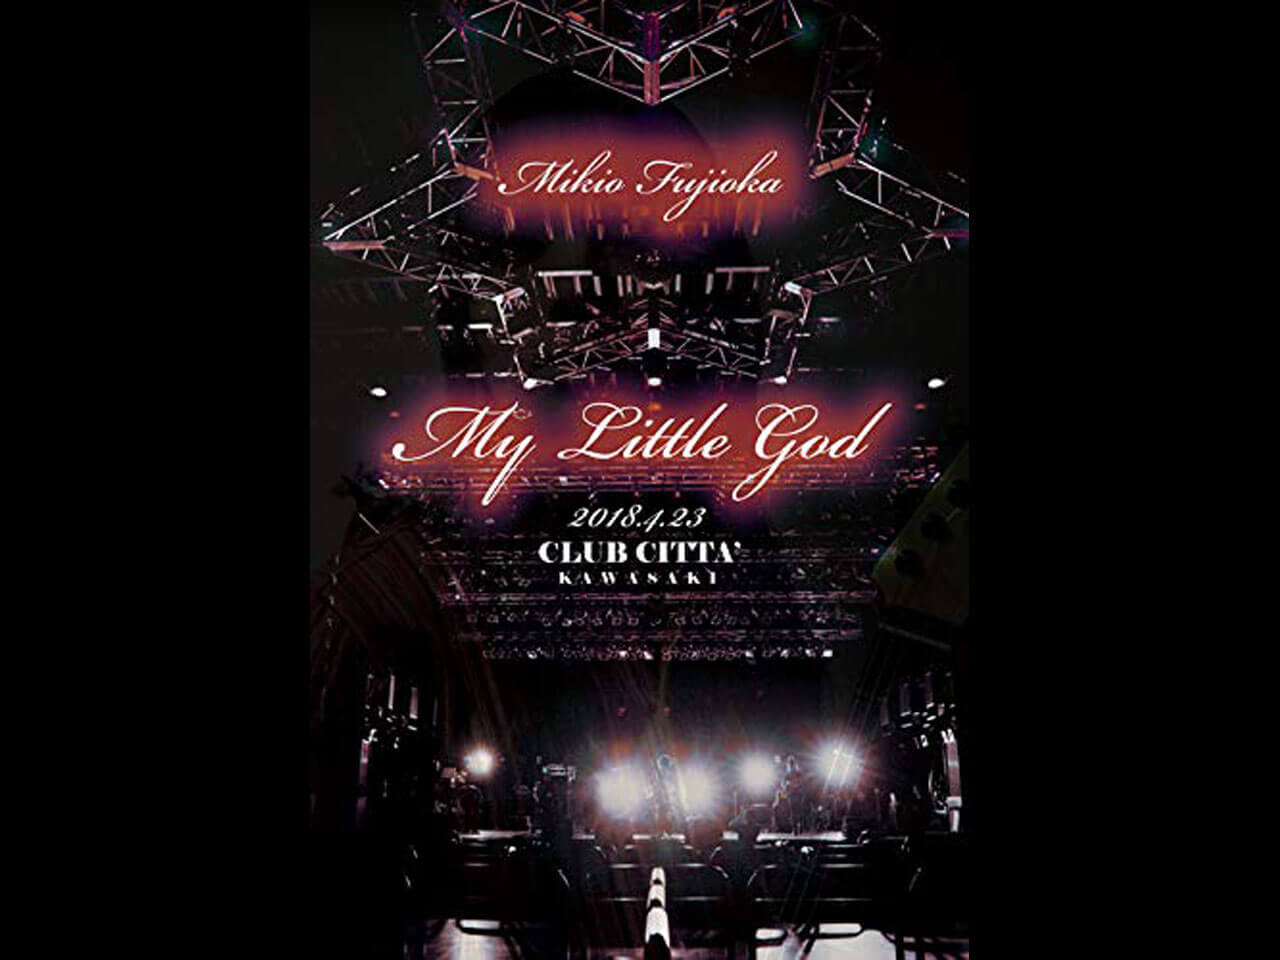 【DVD】My Little God at CLUB CITTA' KAWASAKI